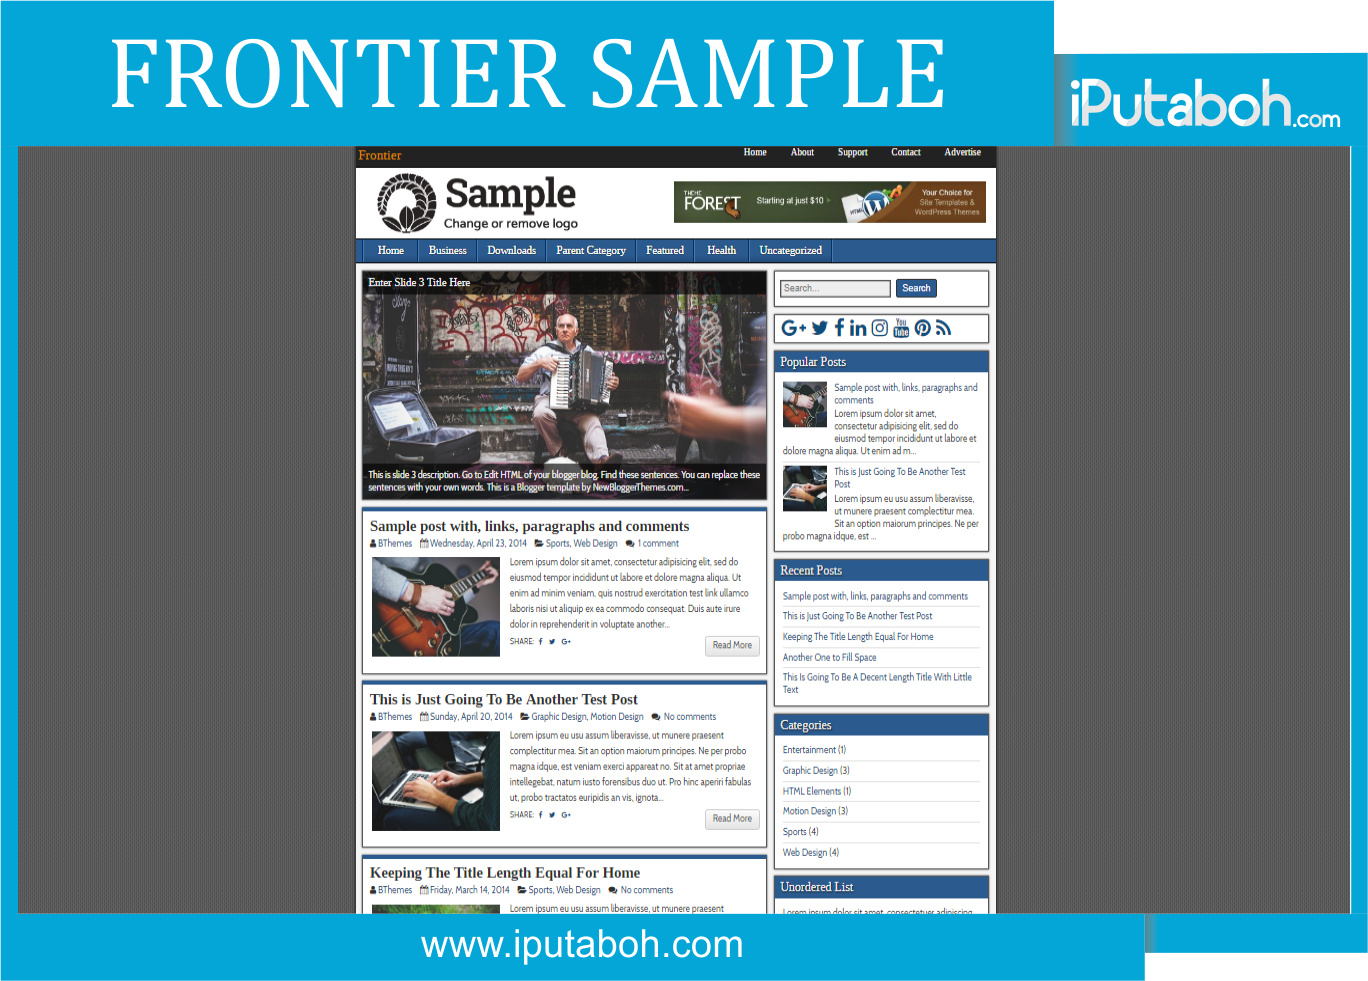 Frontier Sample Blogger Templates - iPutaboh : Blogger Templates